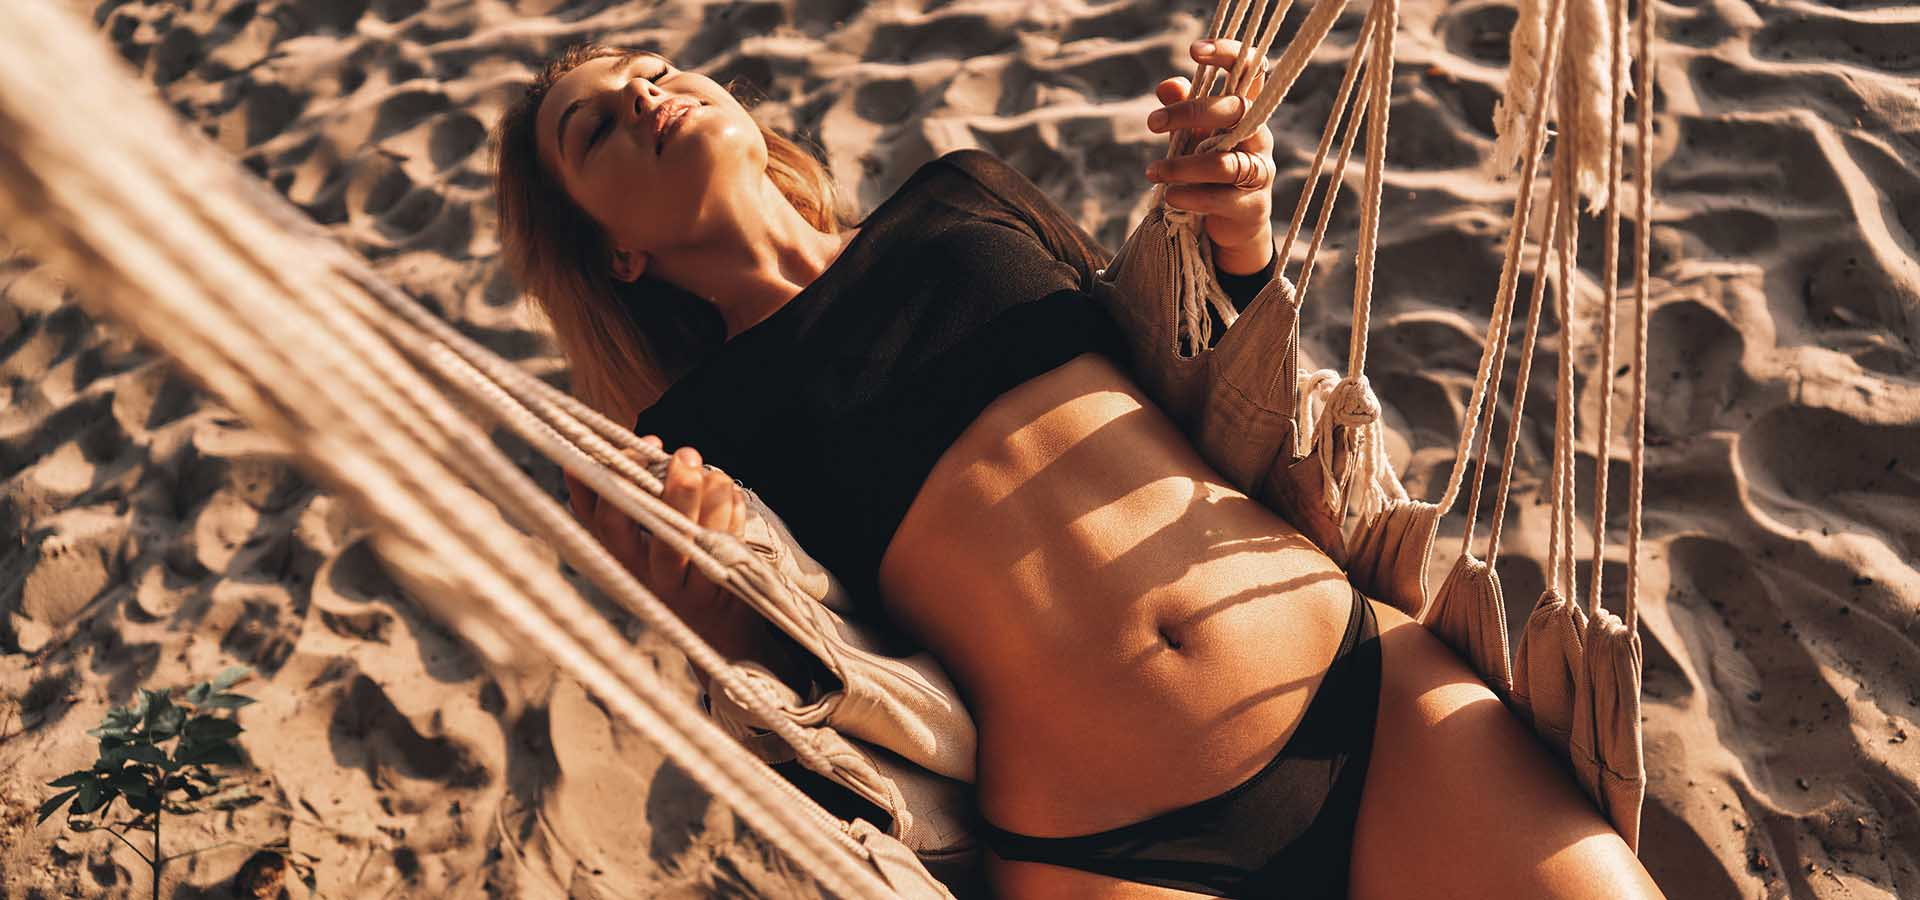 Top view of attractive young woman smiling while lying down in hammock on the beach.